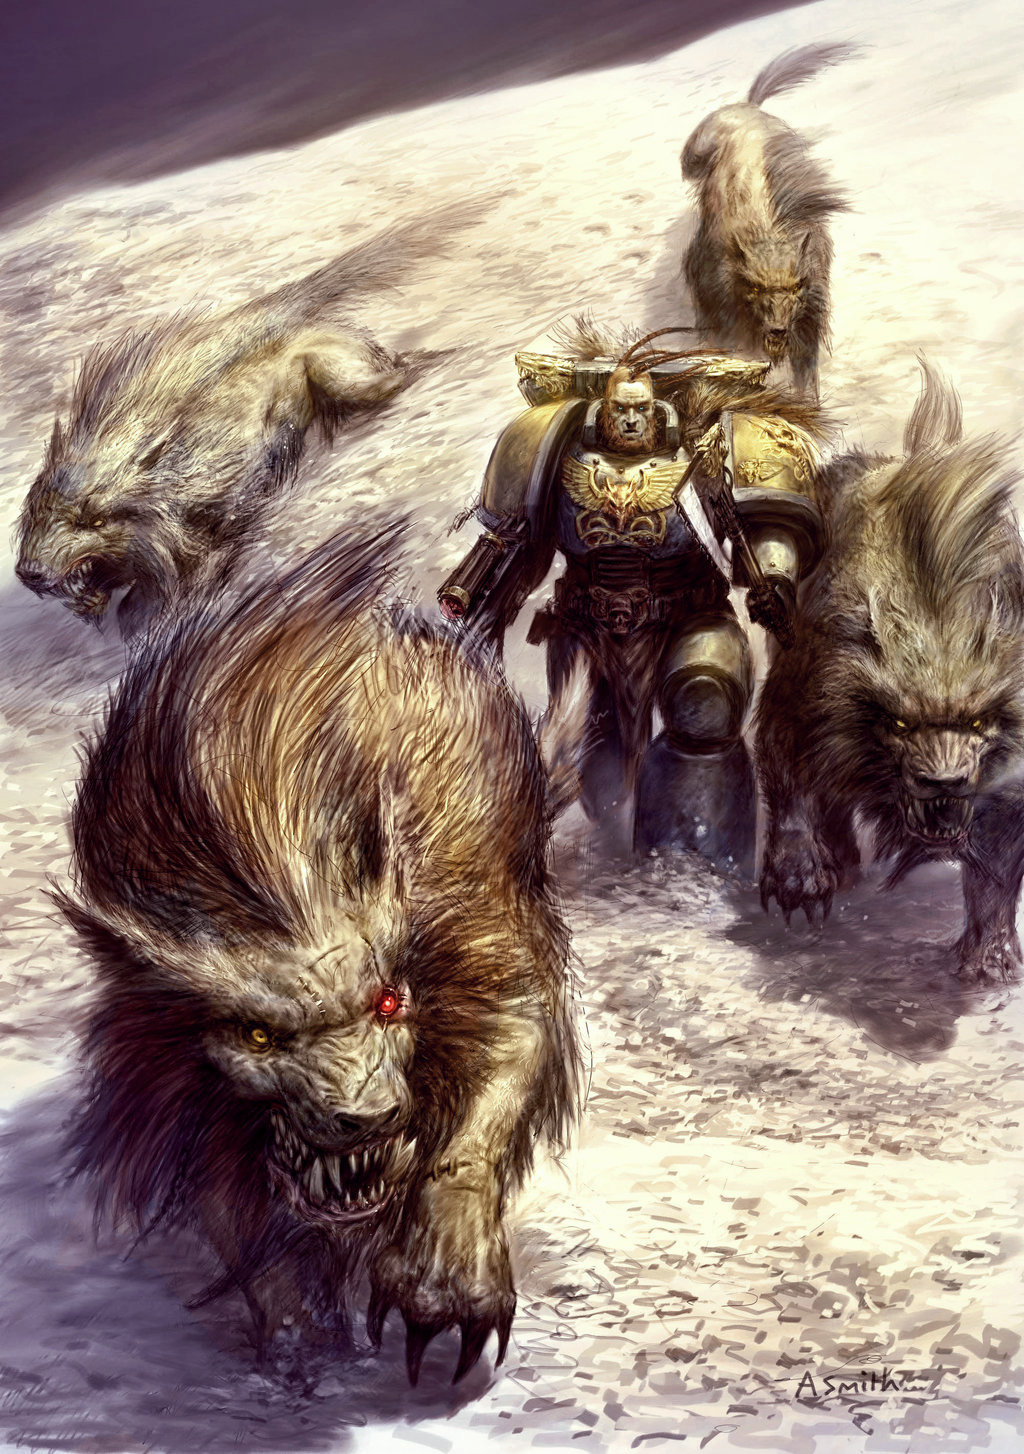 http://img1.wikia.nocookie.net/__cb20120427194943/warhammer40k/images/4/4e/Fenrisian_Wolves.jpg